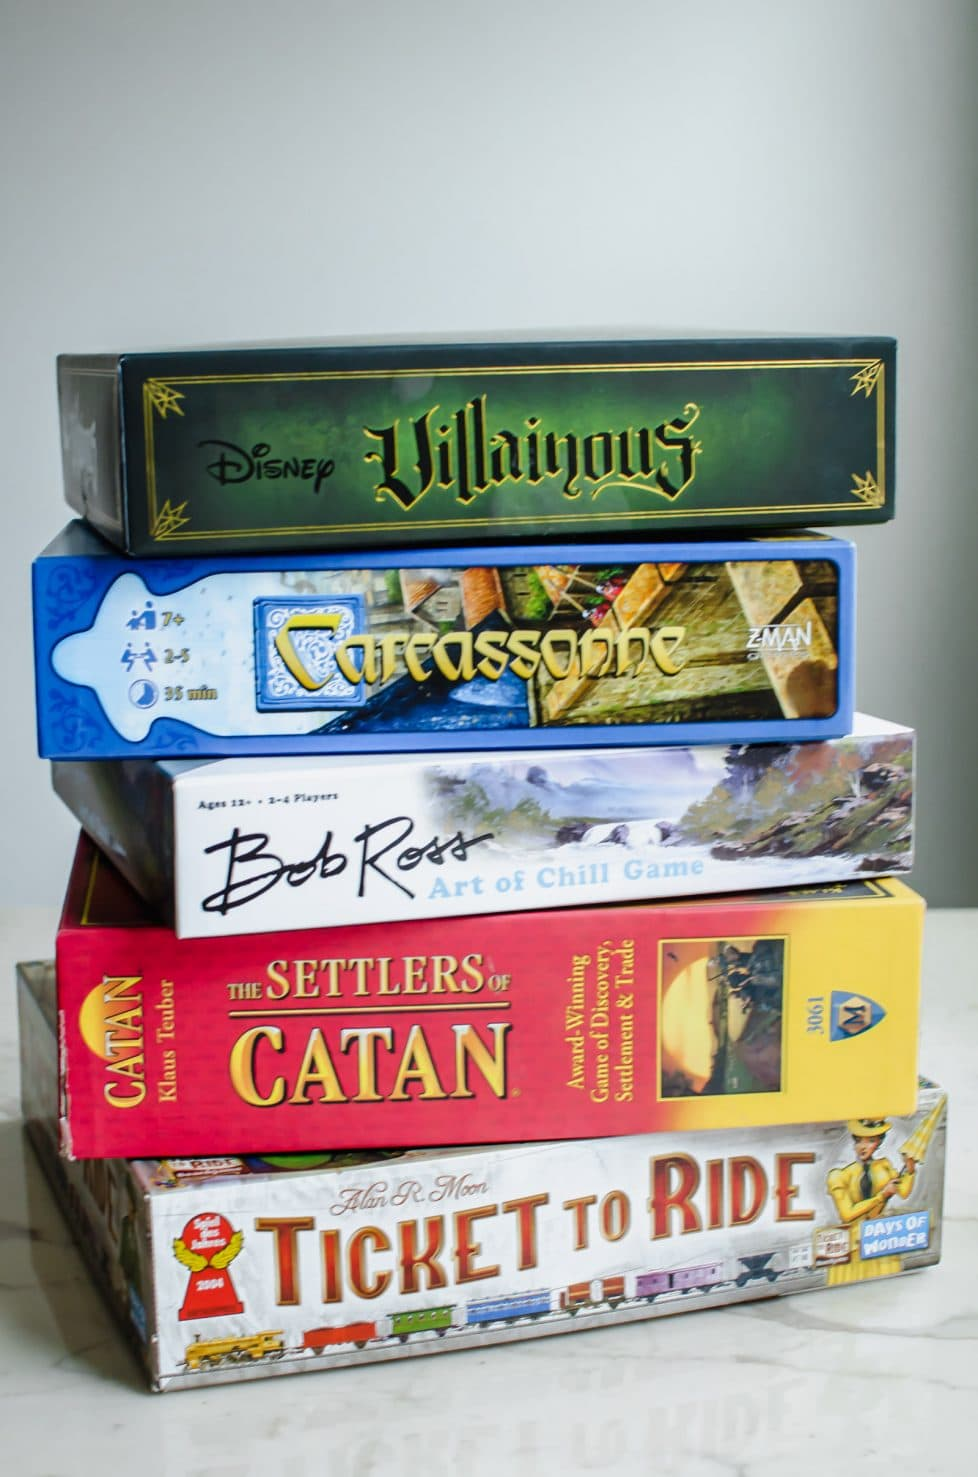 A stack of board games against a white background.